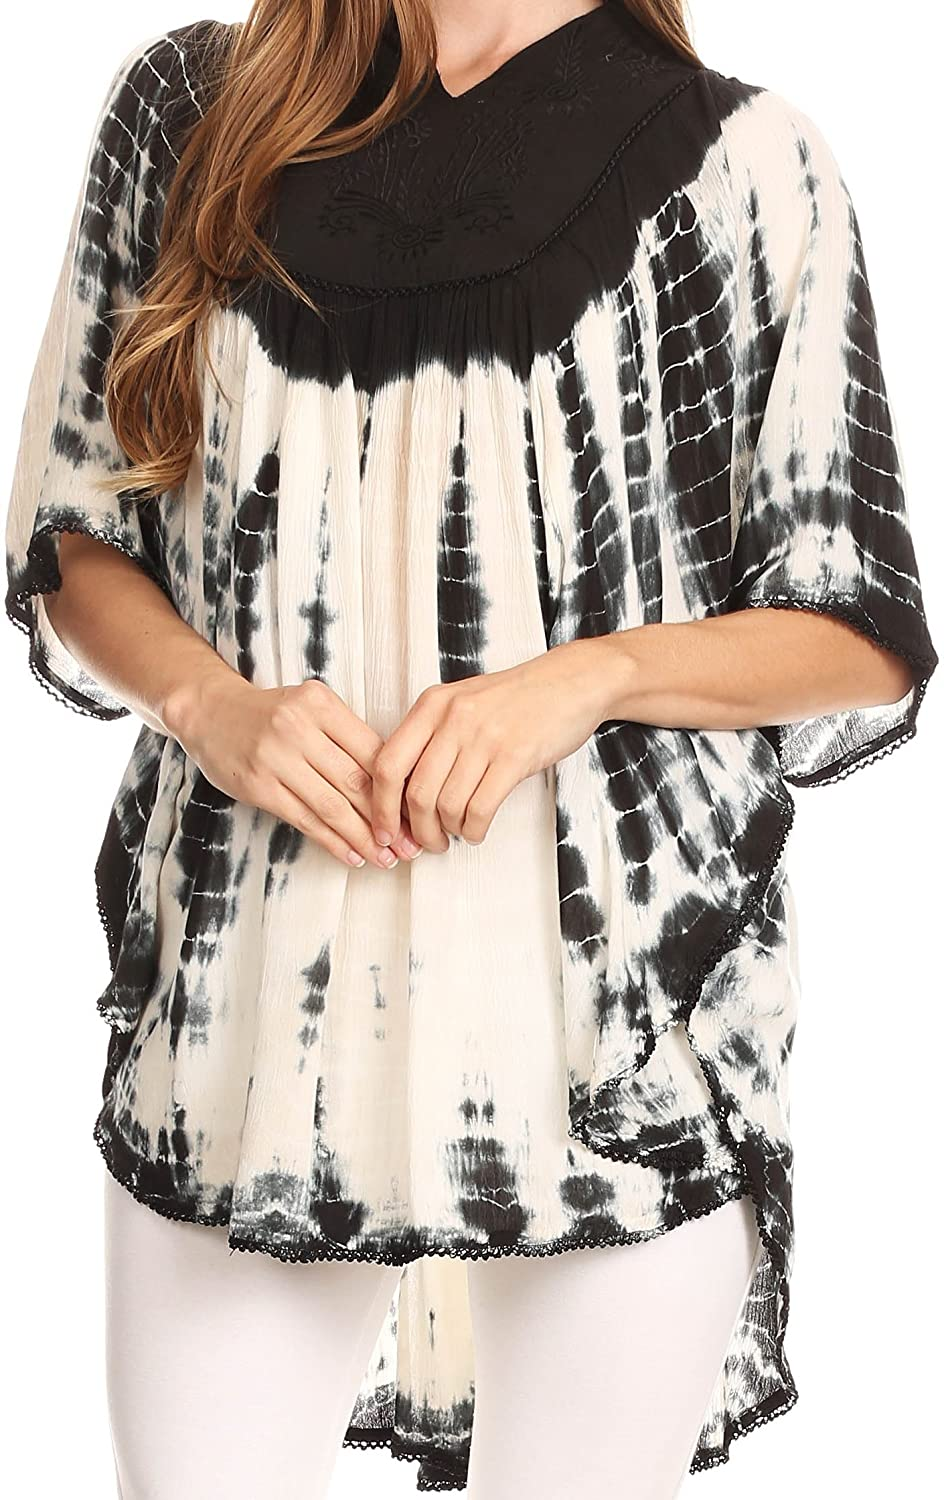 e067de18e2e2 100% Rayon Imported One Size Regular: [(Fits Approximate Top Size: US 0-4X,  UK 6-28, EU 34-56) Max bust size: 72 inches (182.8cm), Length: 32 inches ...